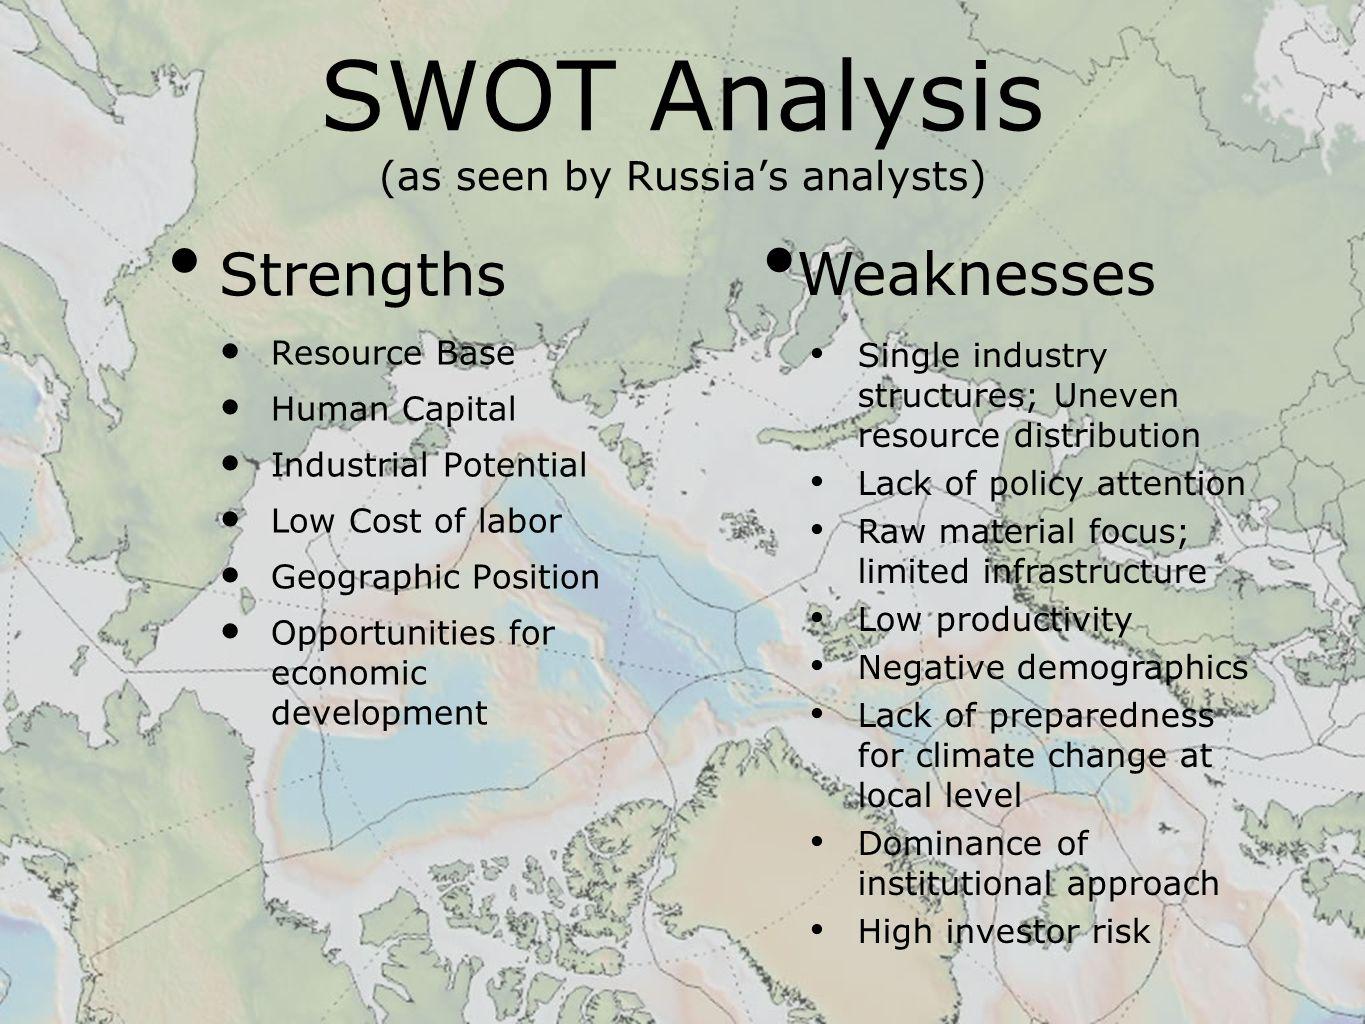 SWOT Analysis (as seen by Russia's analysts) Strengths Resource Base Human Capital Industrial Potential Low Cost of labor Geographic Position Opportunities for economic development Weaknesses Single industry structures; Uneven resource distribution Lack of policy attention Raw material focus; limited infrastructure Low productivity Negative demographics Lack of preparedness for climate change at local level Dominance of institutional approach High investor risk